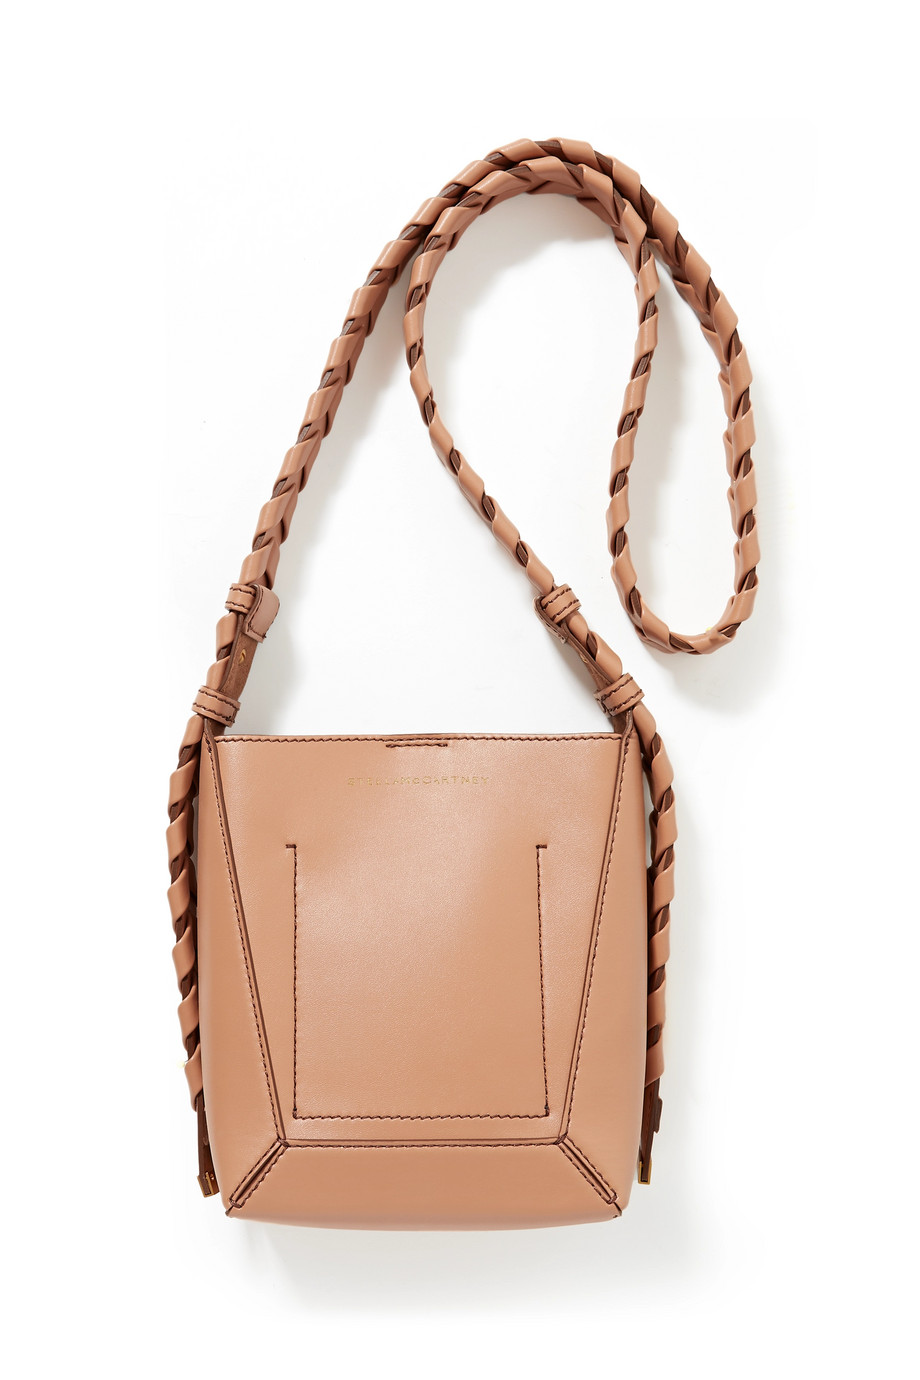 STELLA MCCARTNEY Small vegetarian leather shoulder bag